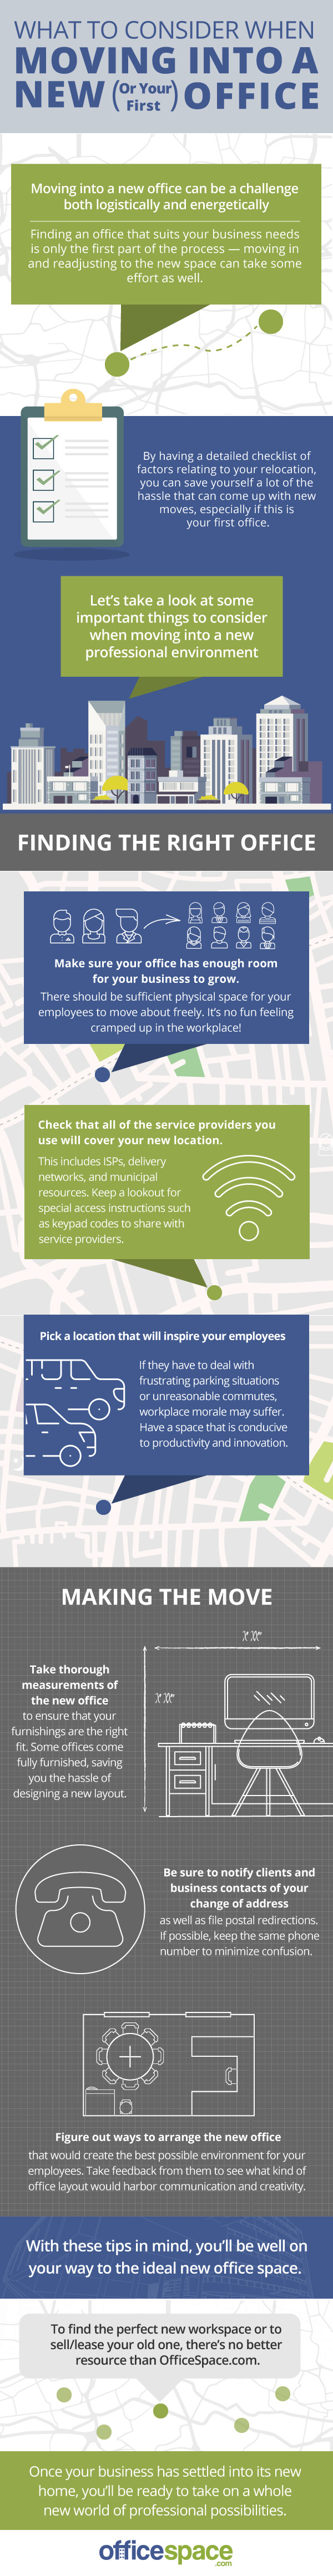 Infographic - What to consider when moving into your new office